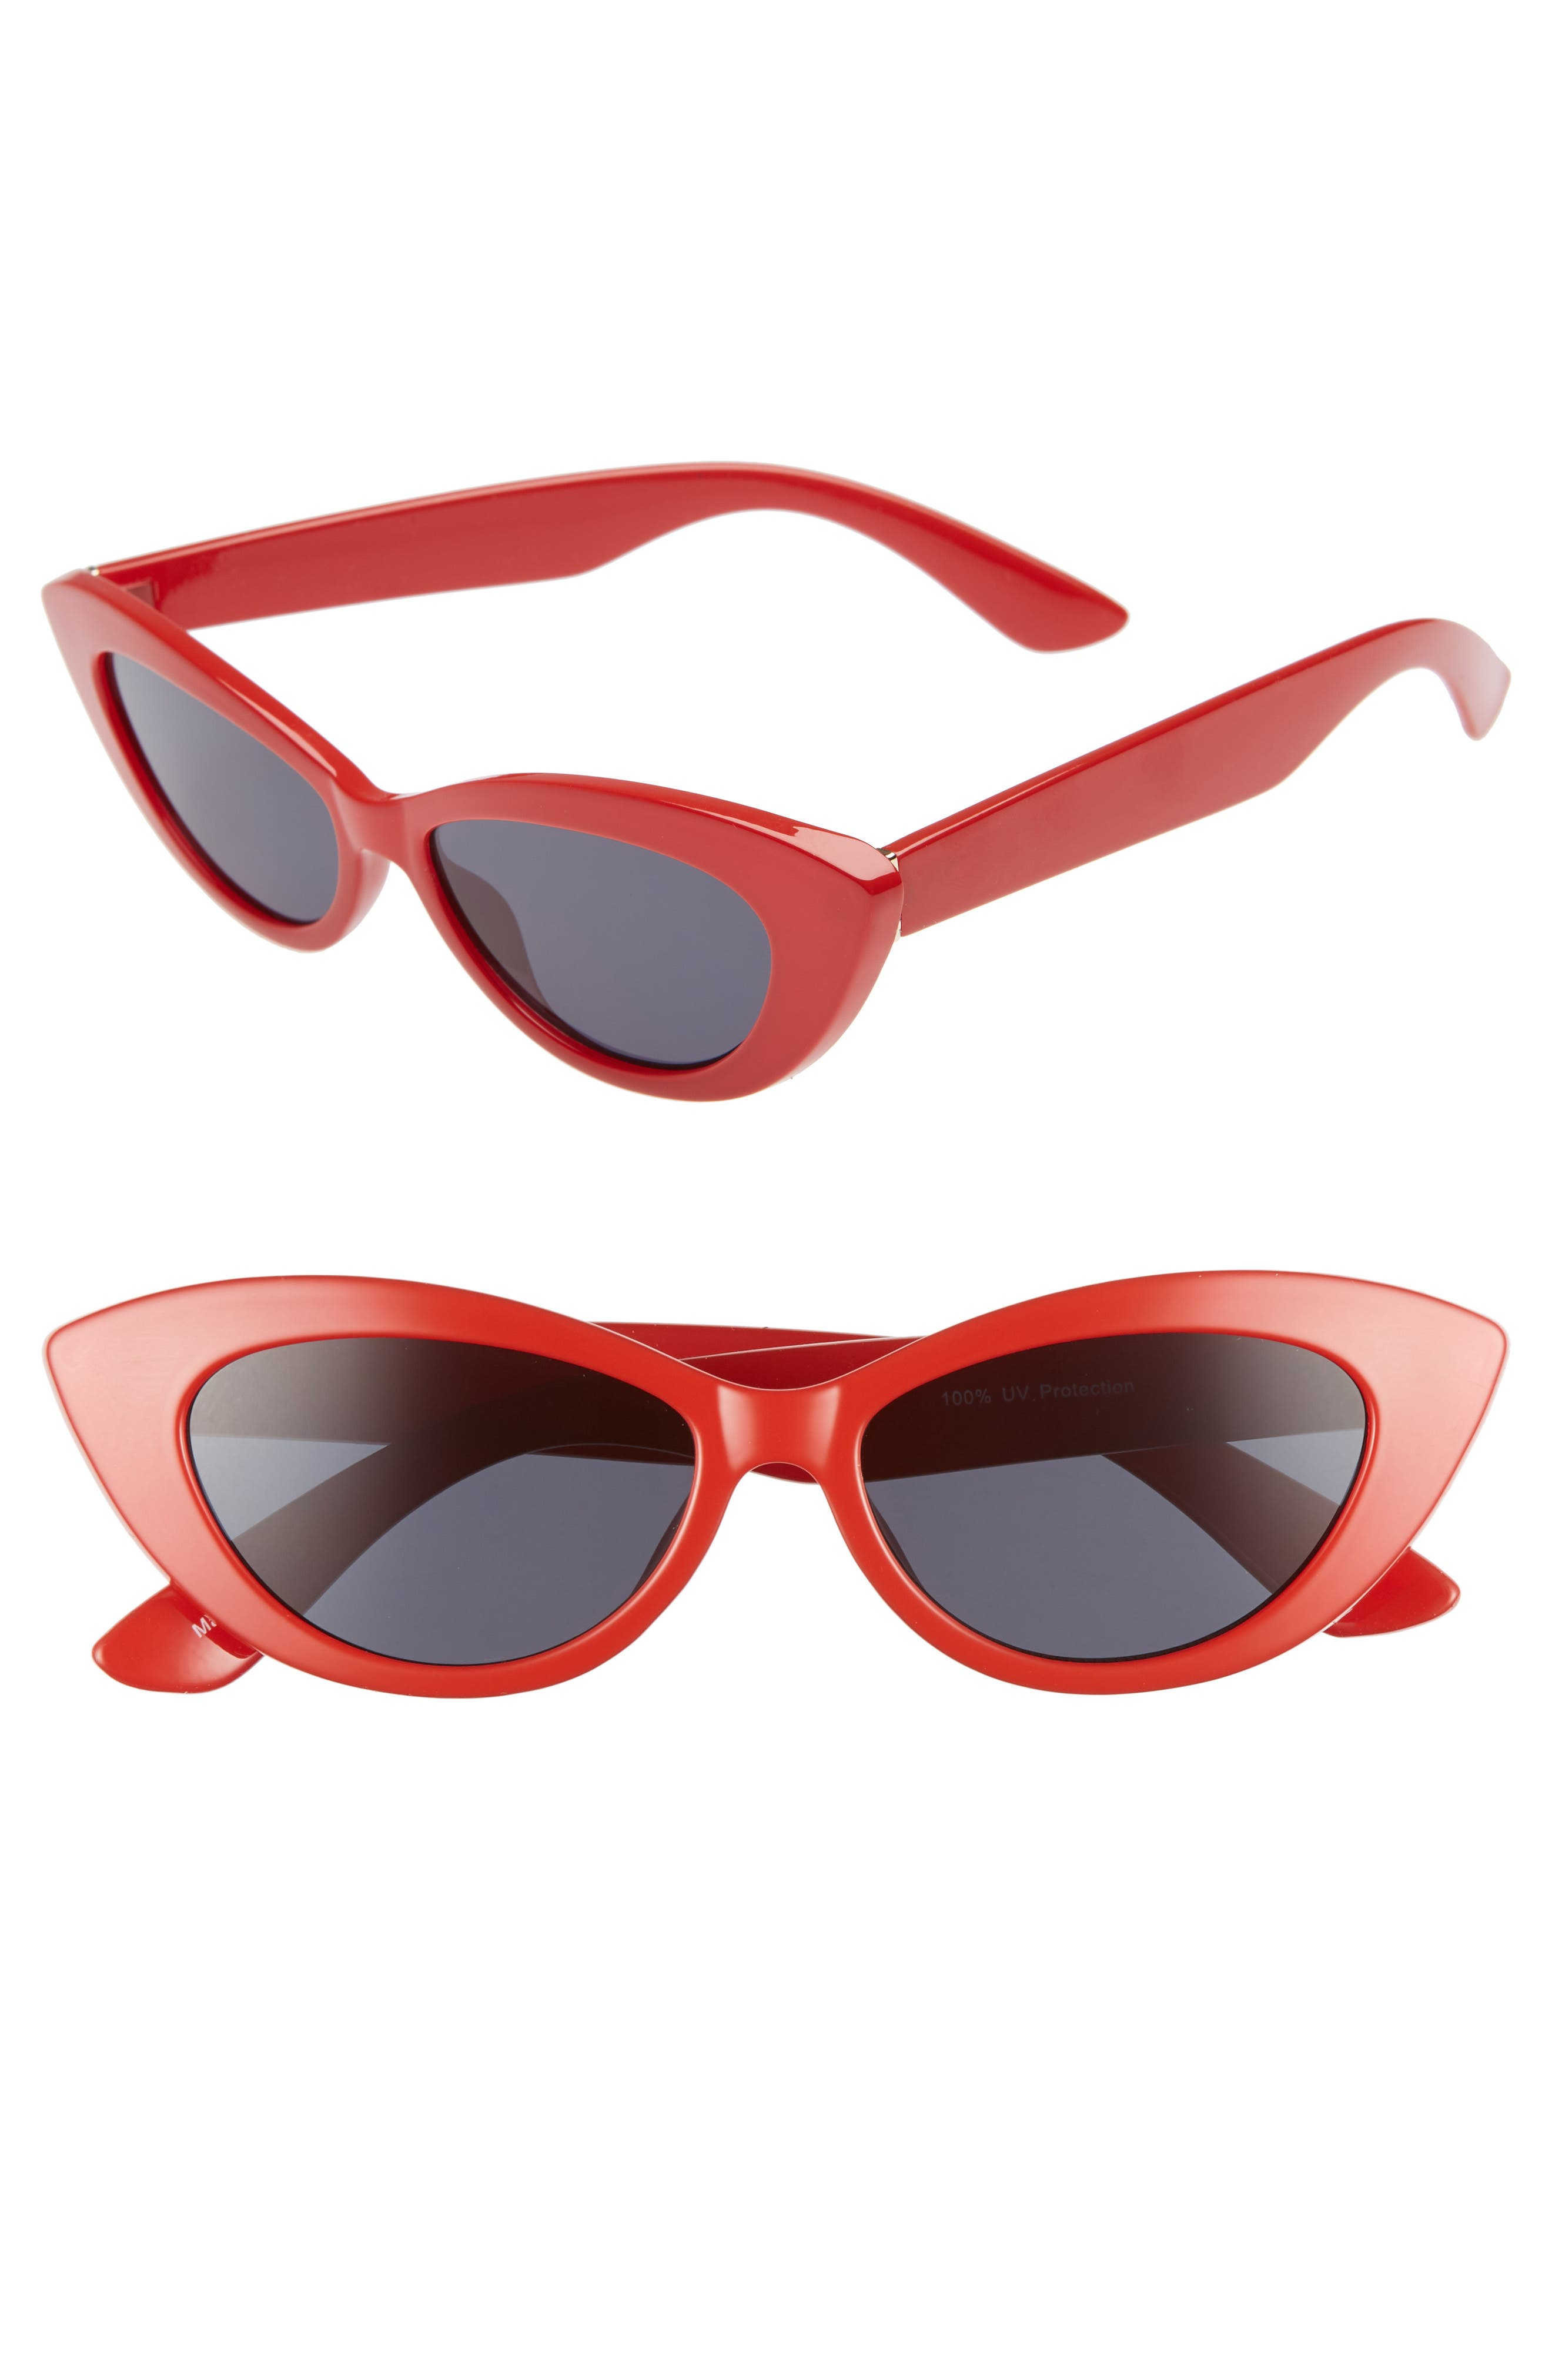 51mm Cat Eye Sunglasses,                             Main thumbnail 1, color,                             RED